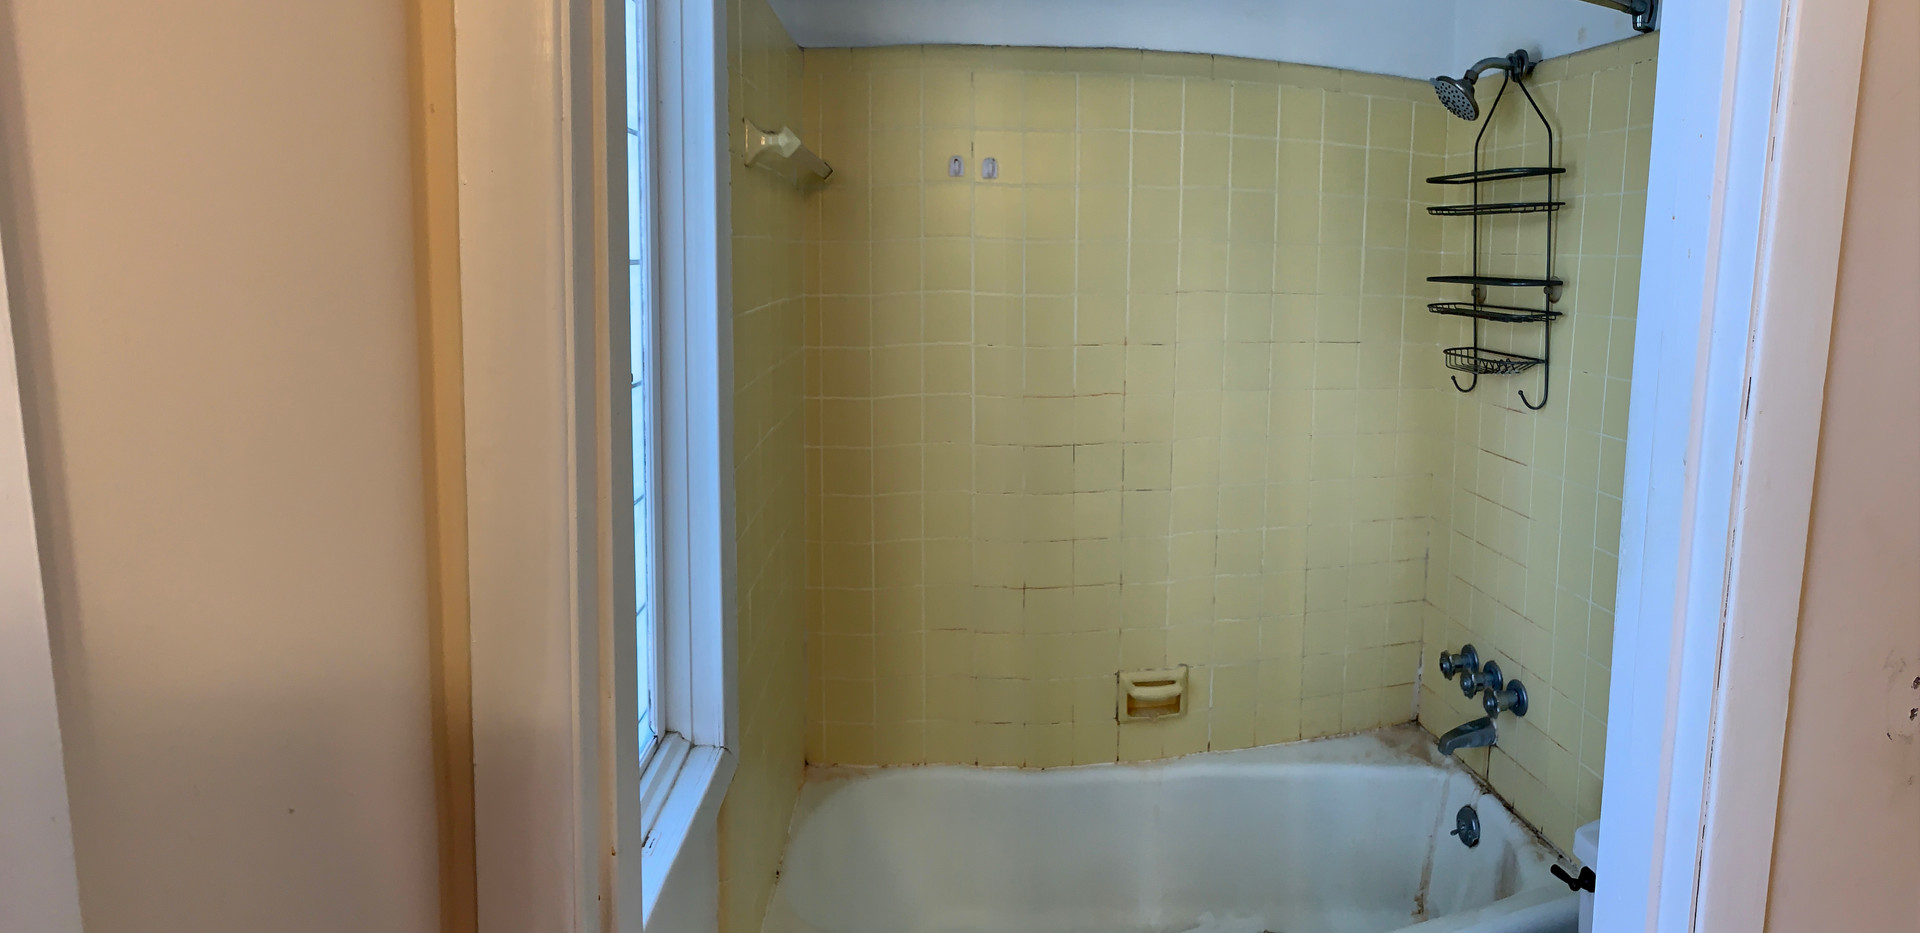 BatchElder, Bathroom Before&After Pics,